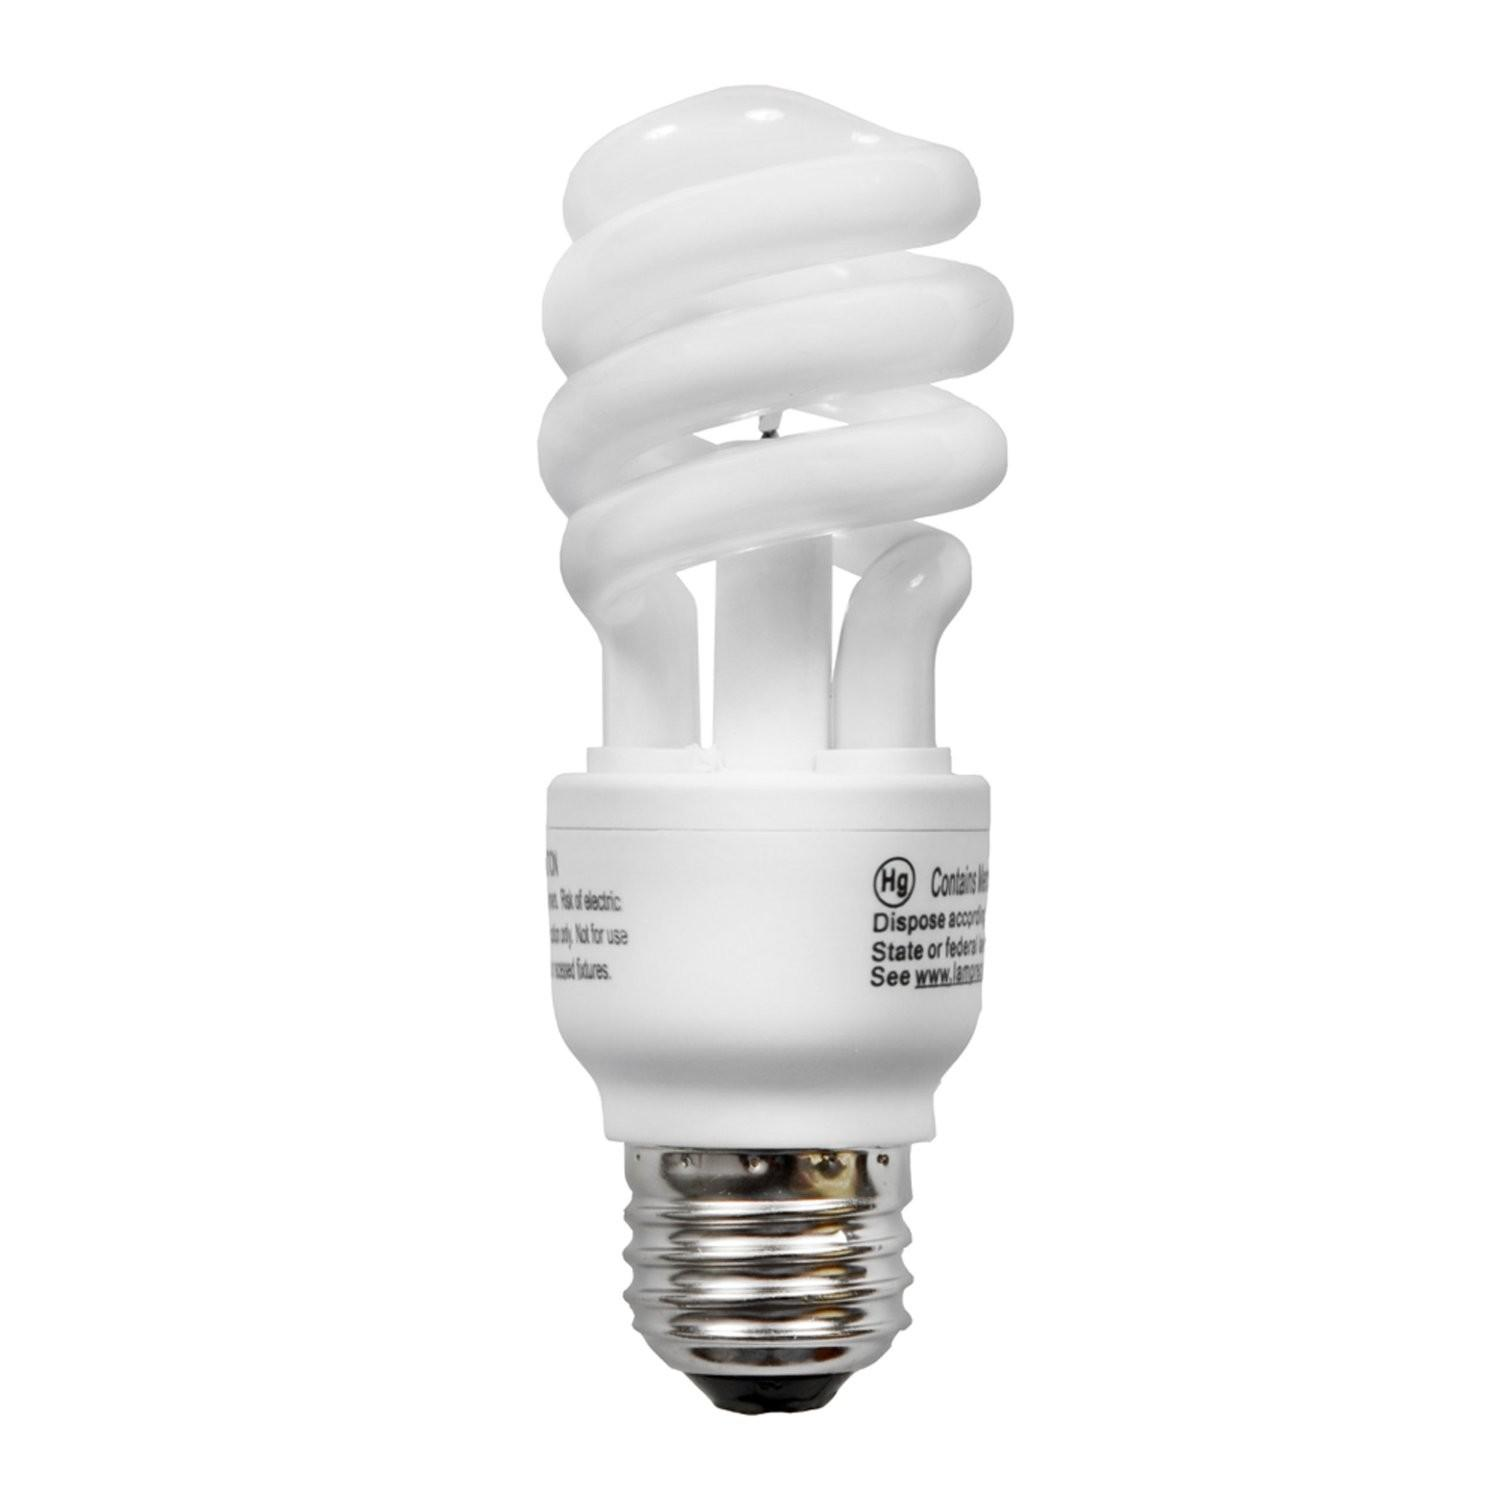 Eco Friendly Lighting Solutions Your Home